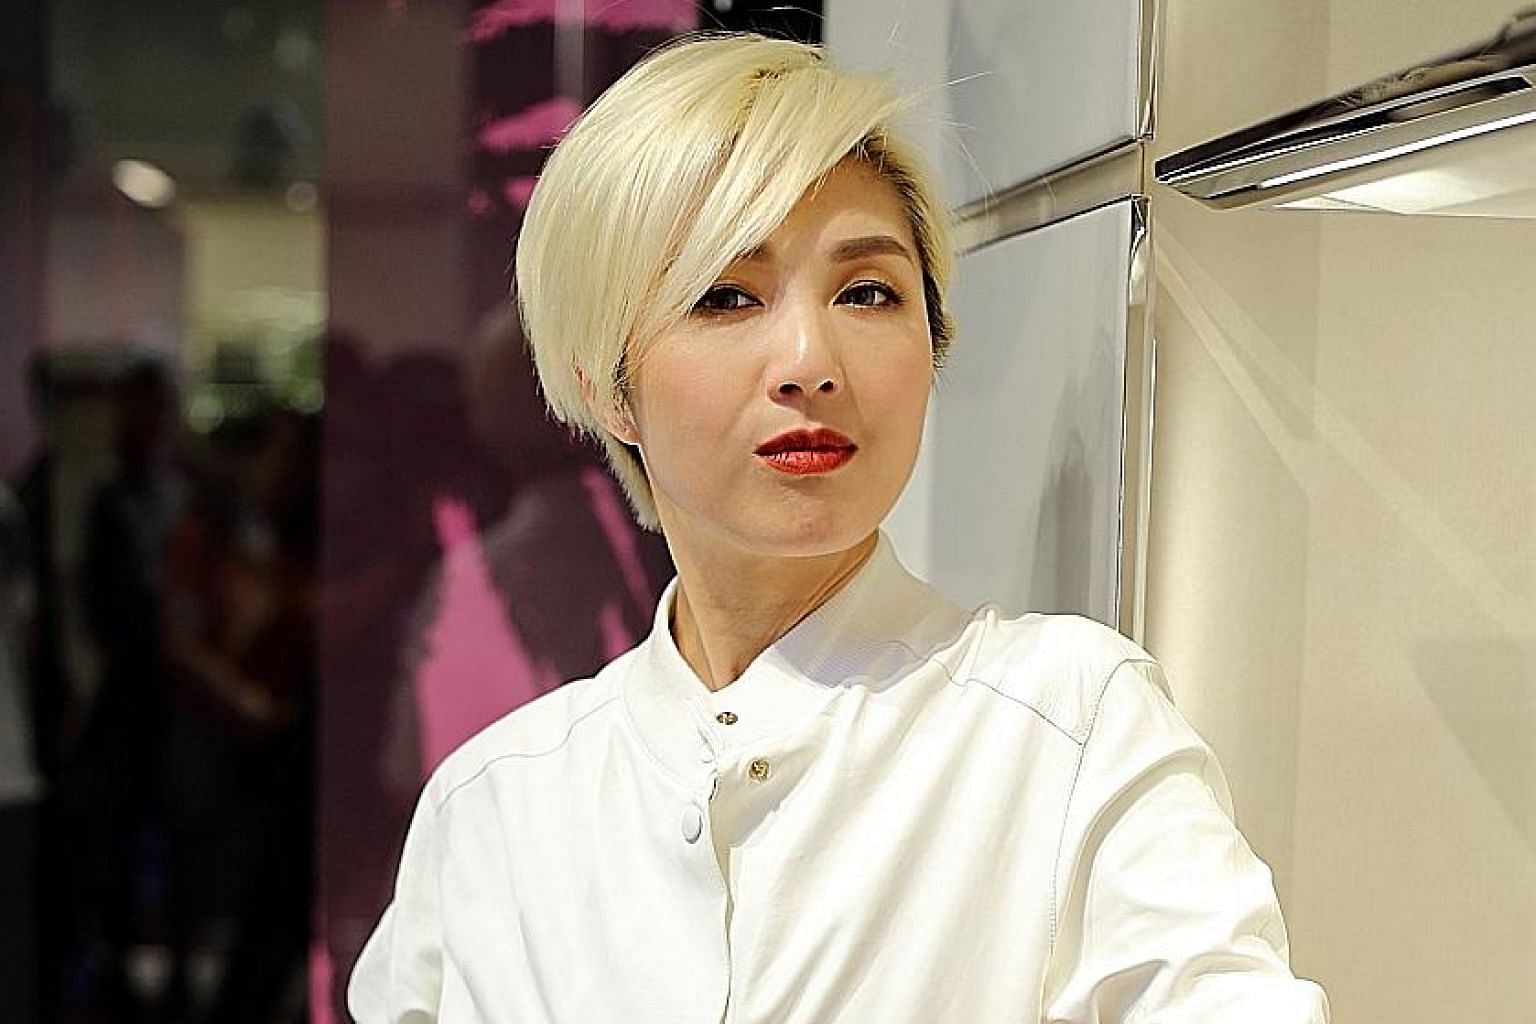 Singer-actress Miriam Yeung will be starring in new TVB series Wonder Women, her first television drama in nine years.